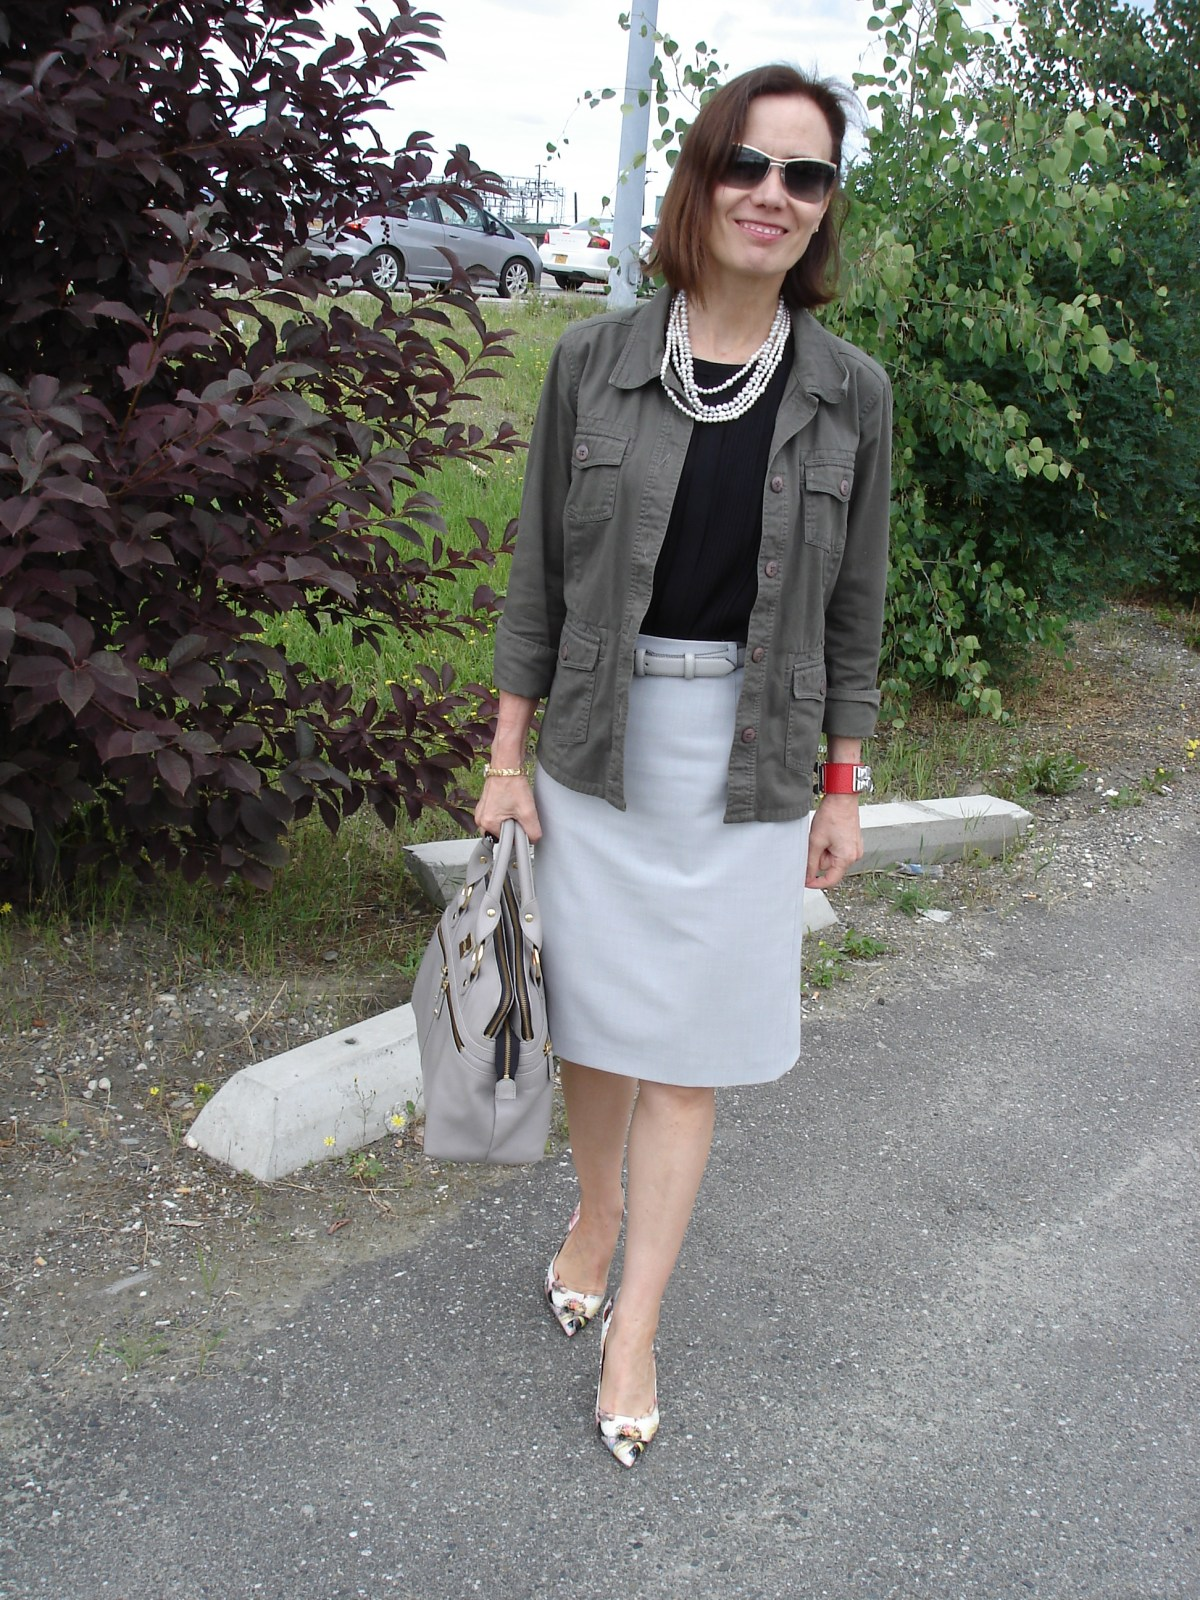 fashionista over 50 in utility jacket outfit